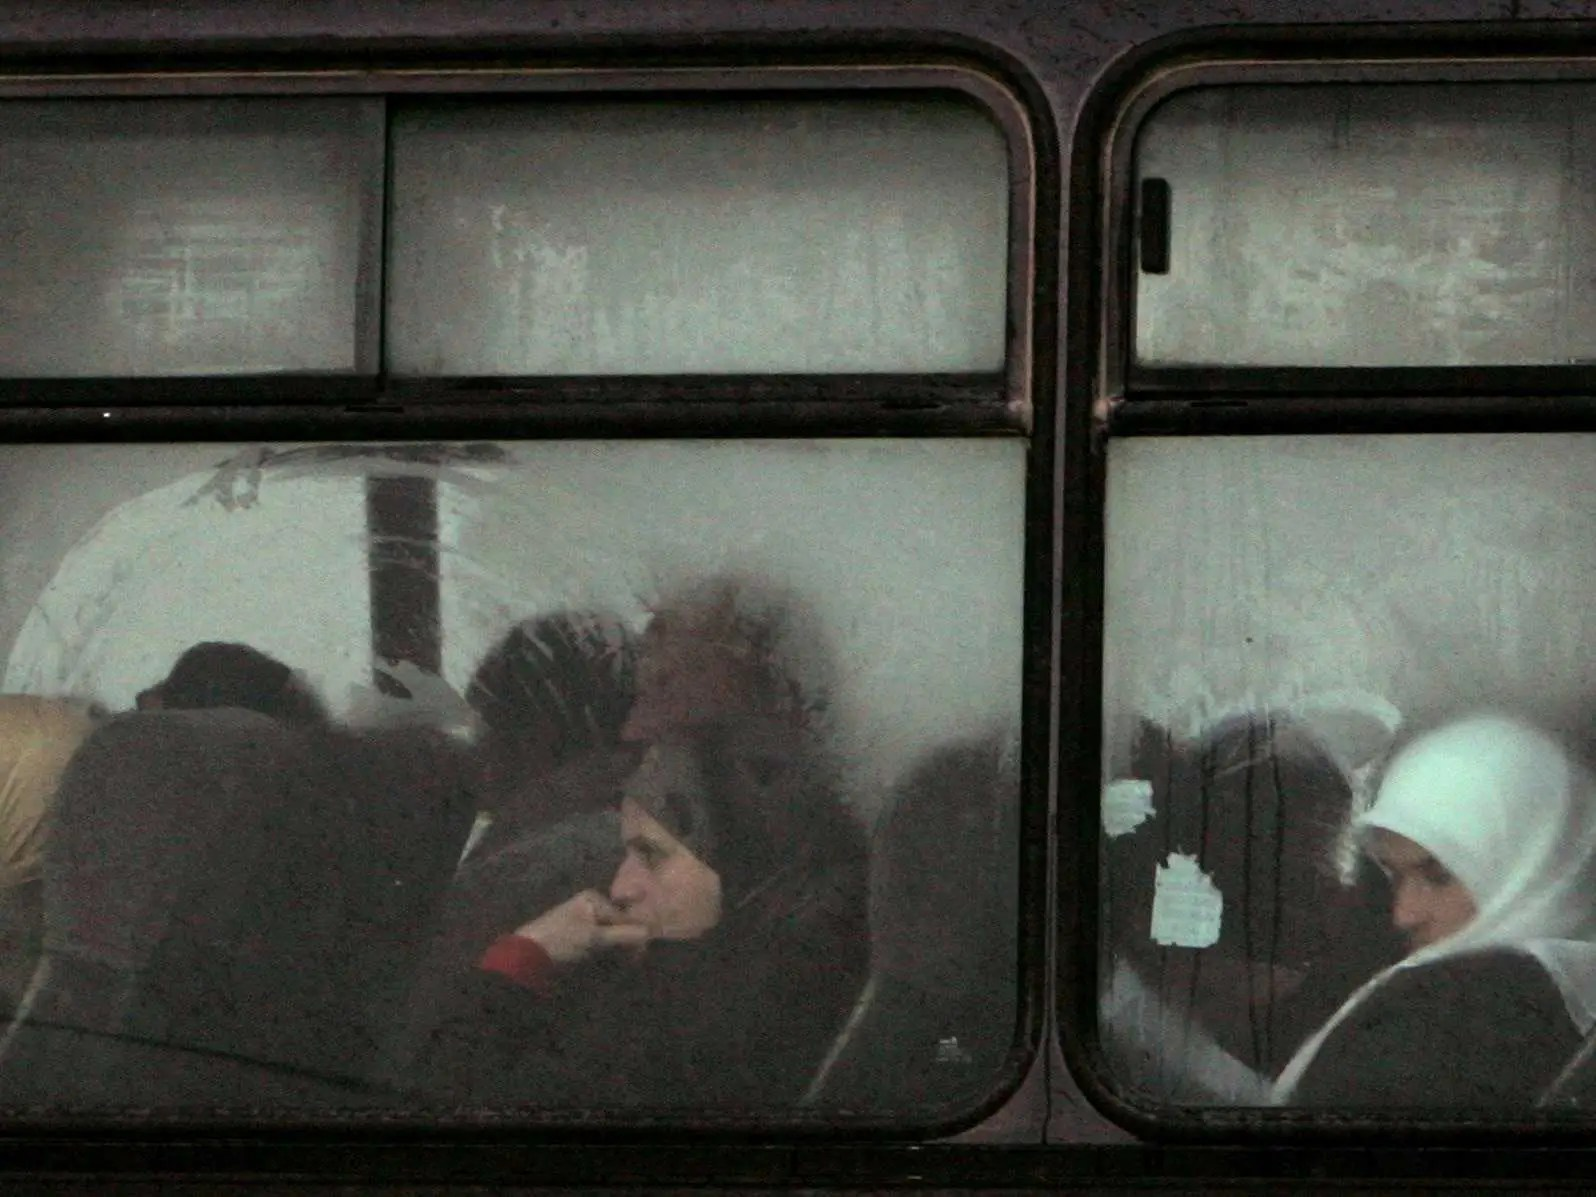 Palestinian women sit on bus at West Bank crossing